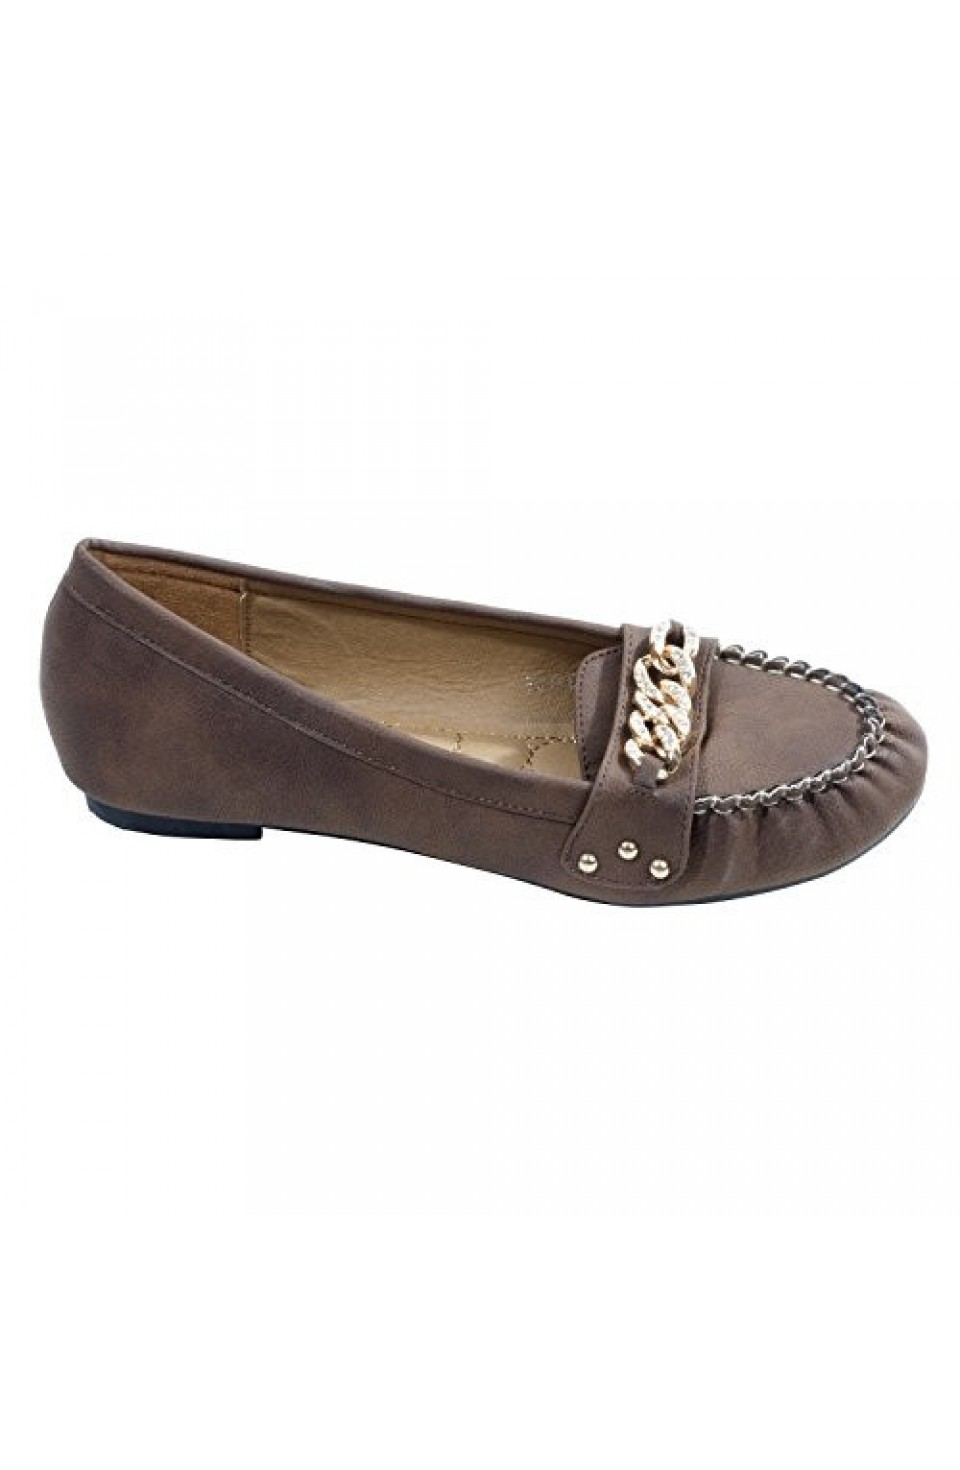 Women's Brown Kaylen Manmade Moccasin Flat with Studded Twist